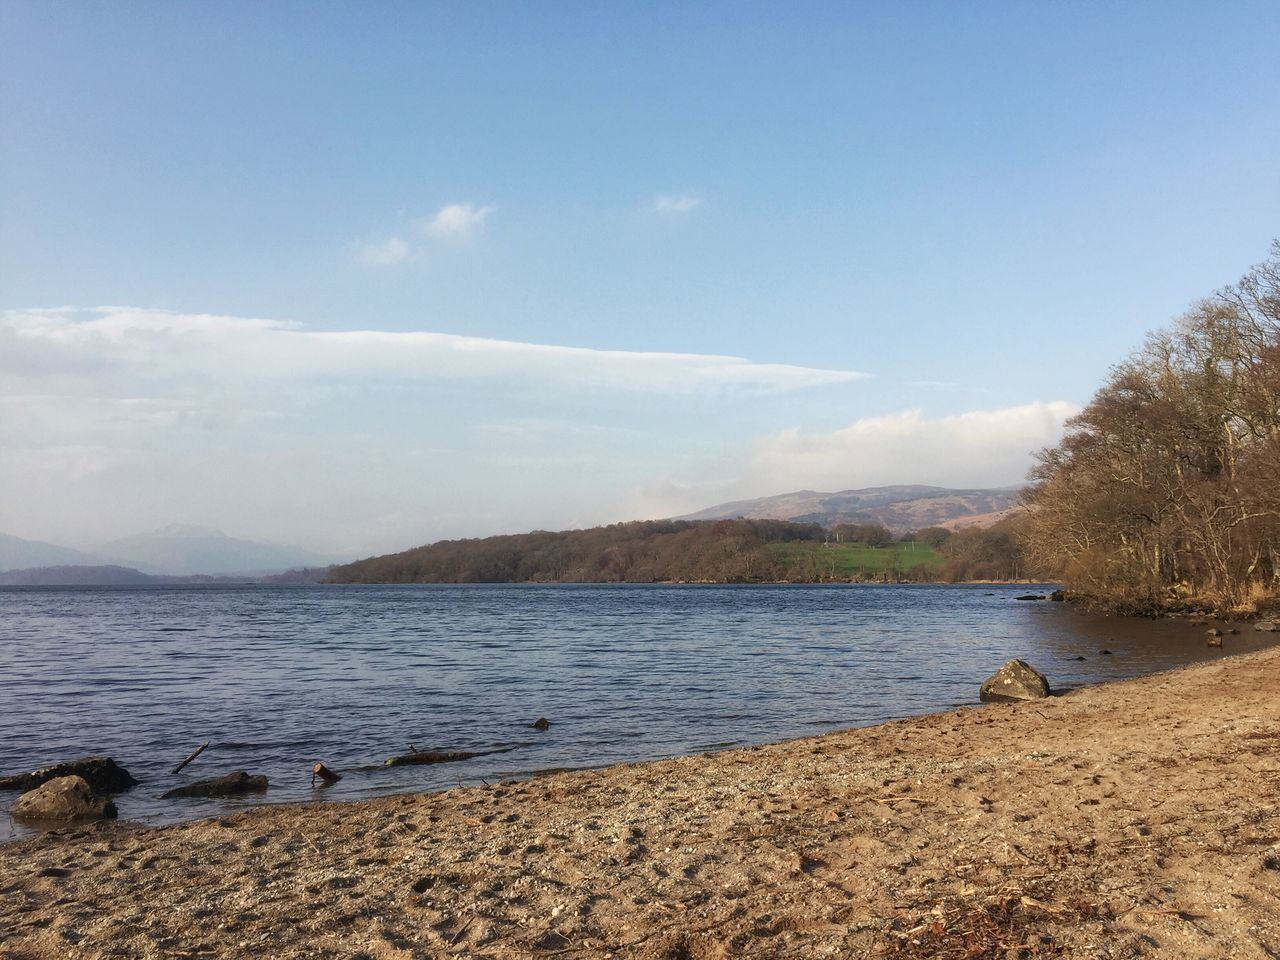 LochLomond Scotland Beautiful View Scenery Shots Rural Scene Waterfront Sand Beach Water Sky Tranquil Scene Mountain Outdoors Day Nature Landscape Beauty In Nature Nature_collection Scenics Naturelovers Beautiful Nature Scotlandsbeauty Lovely World 🌎